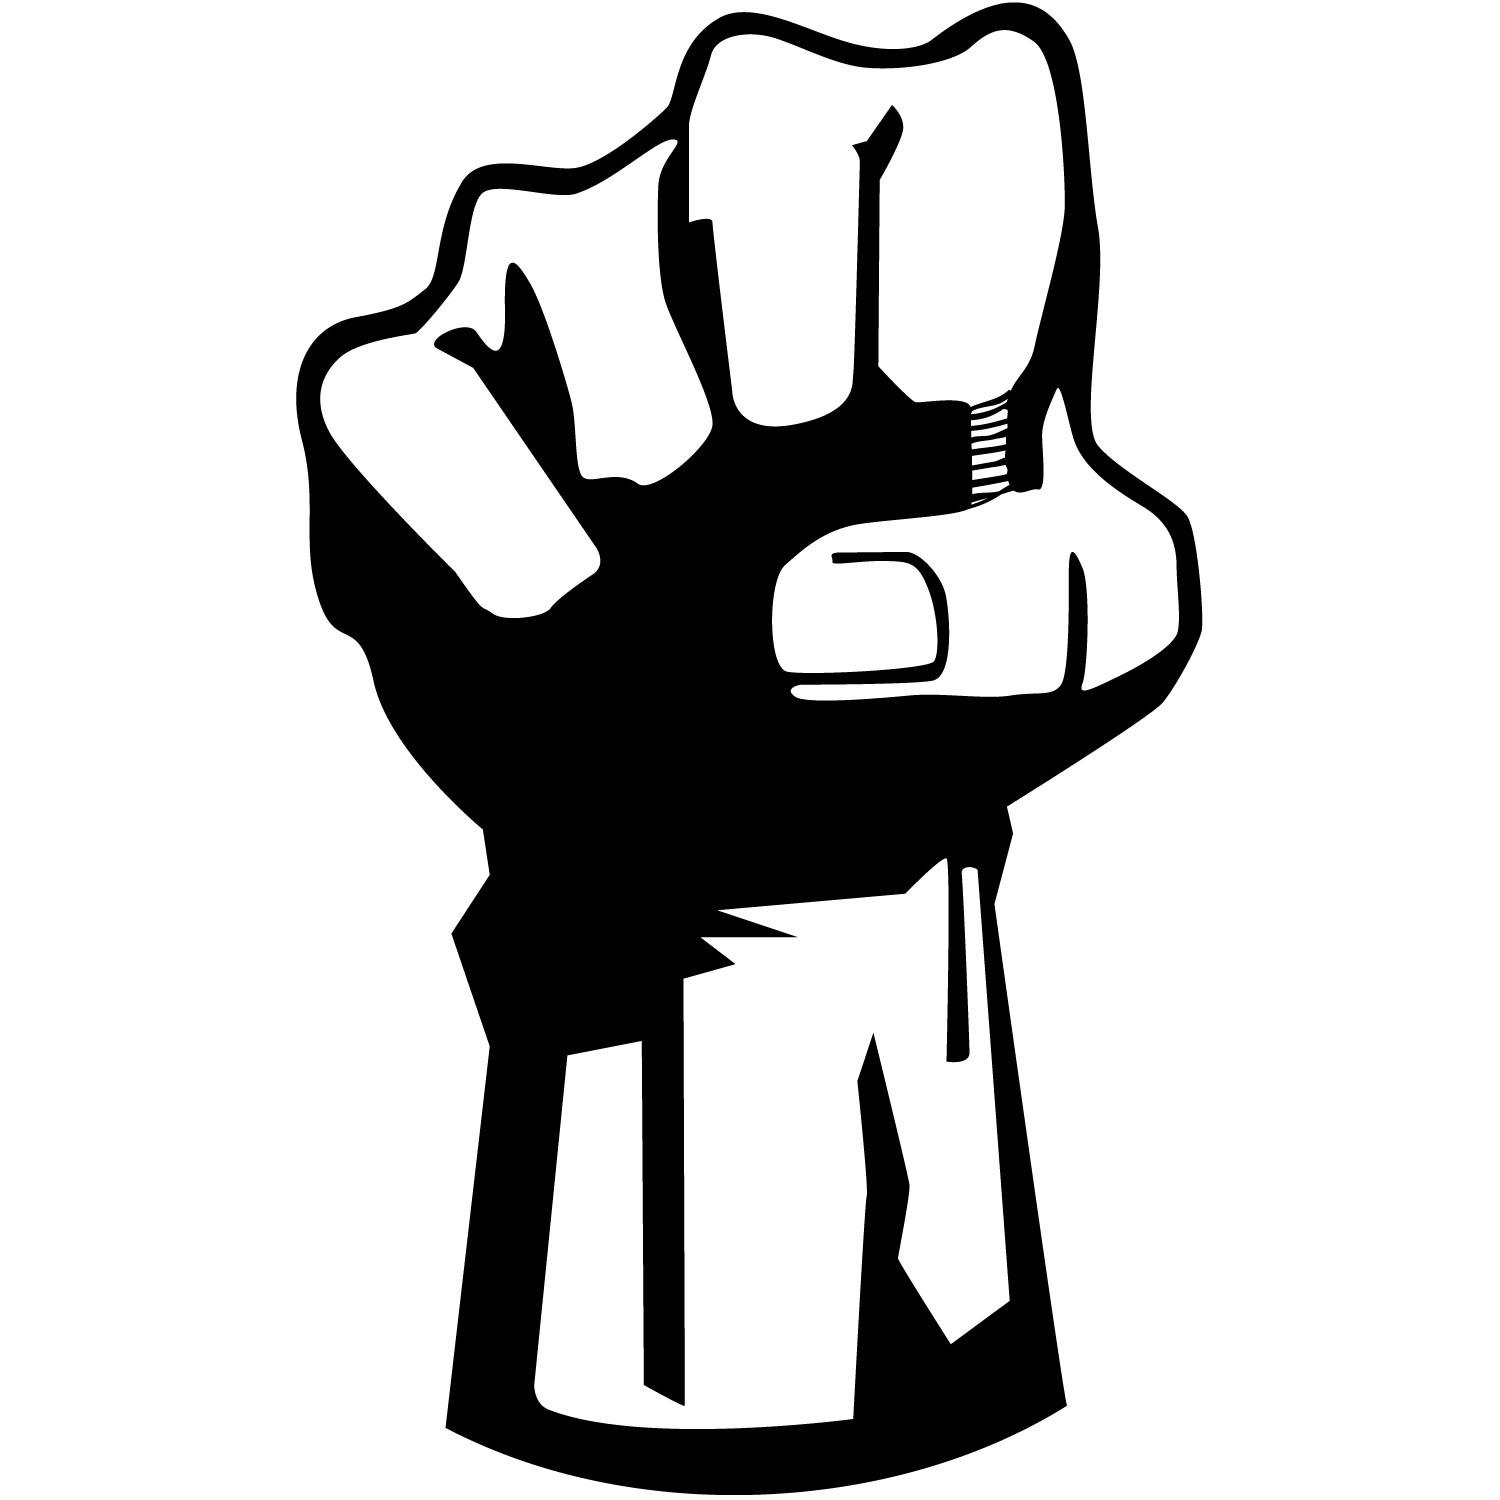 Punching fist clipart cliparts of free download.